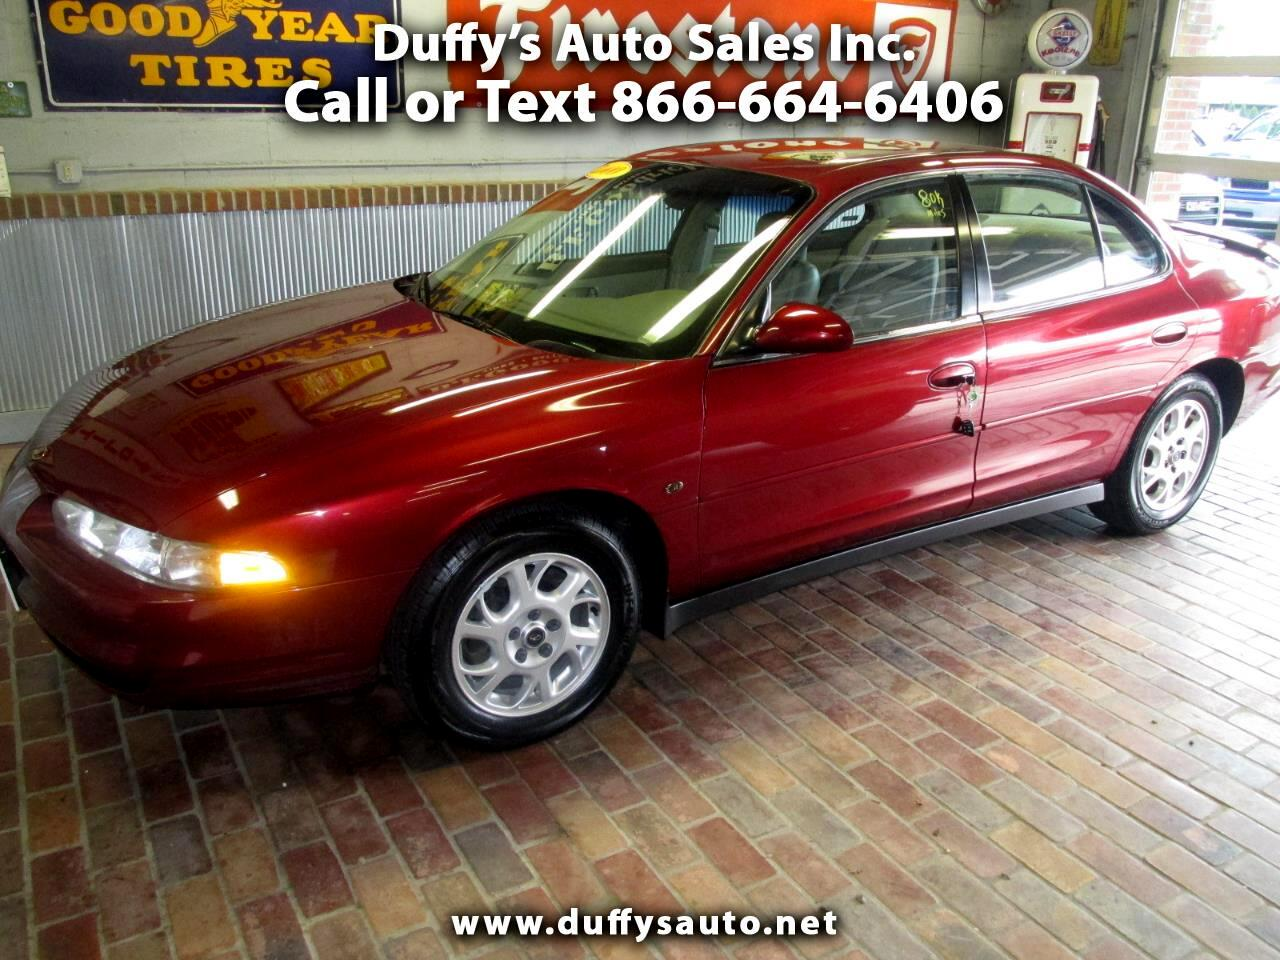 2000 Oldsmobile Intrigue 4dr Sdn GL